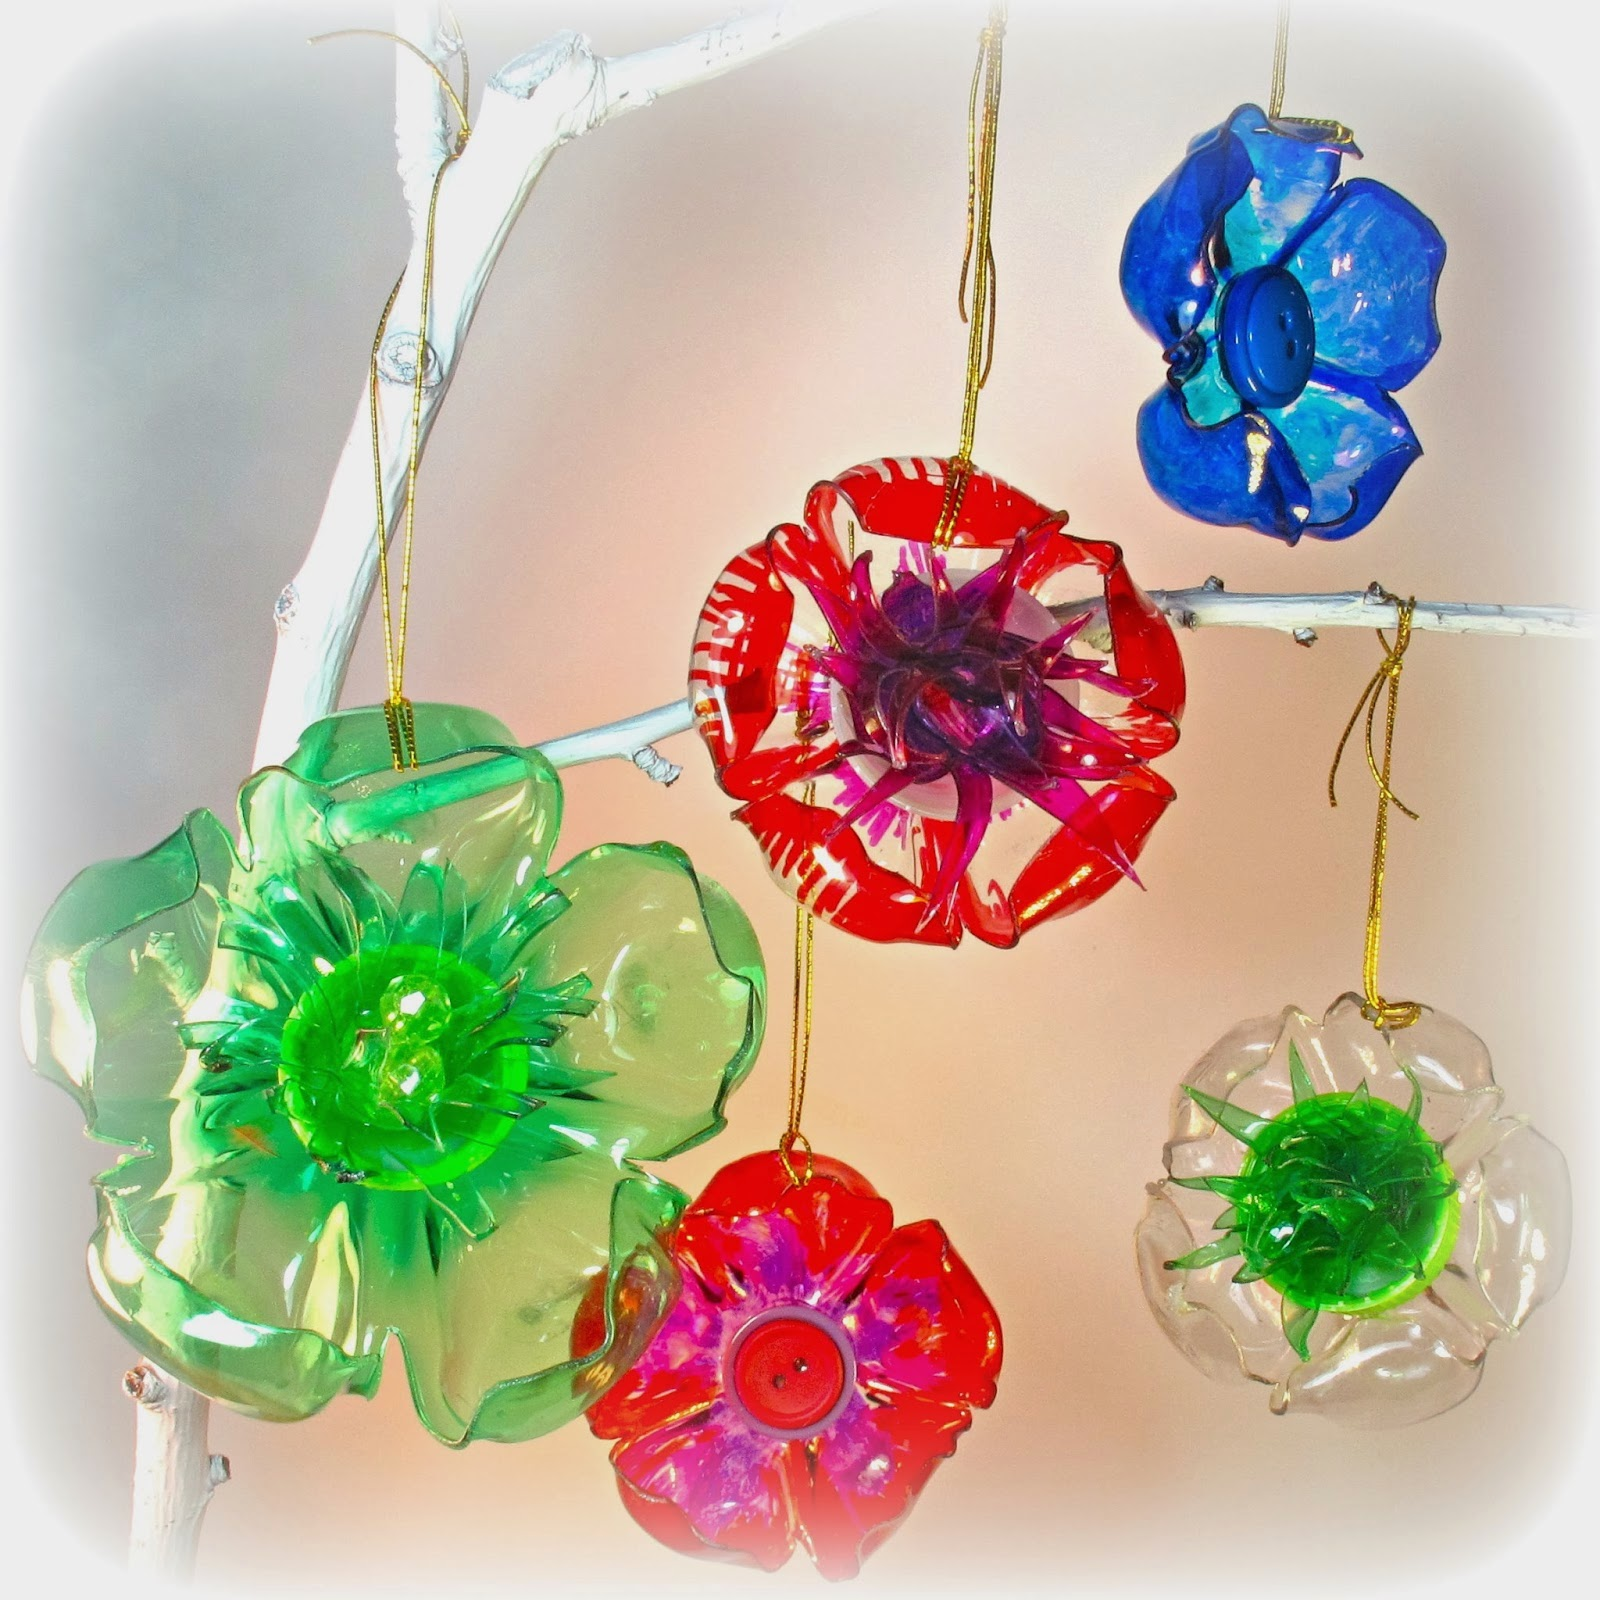 Making christmas decorations using recycled materials - Some Art And Craft Ideas